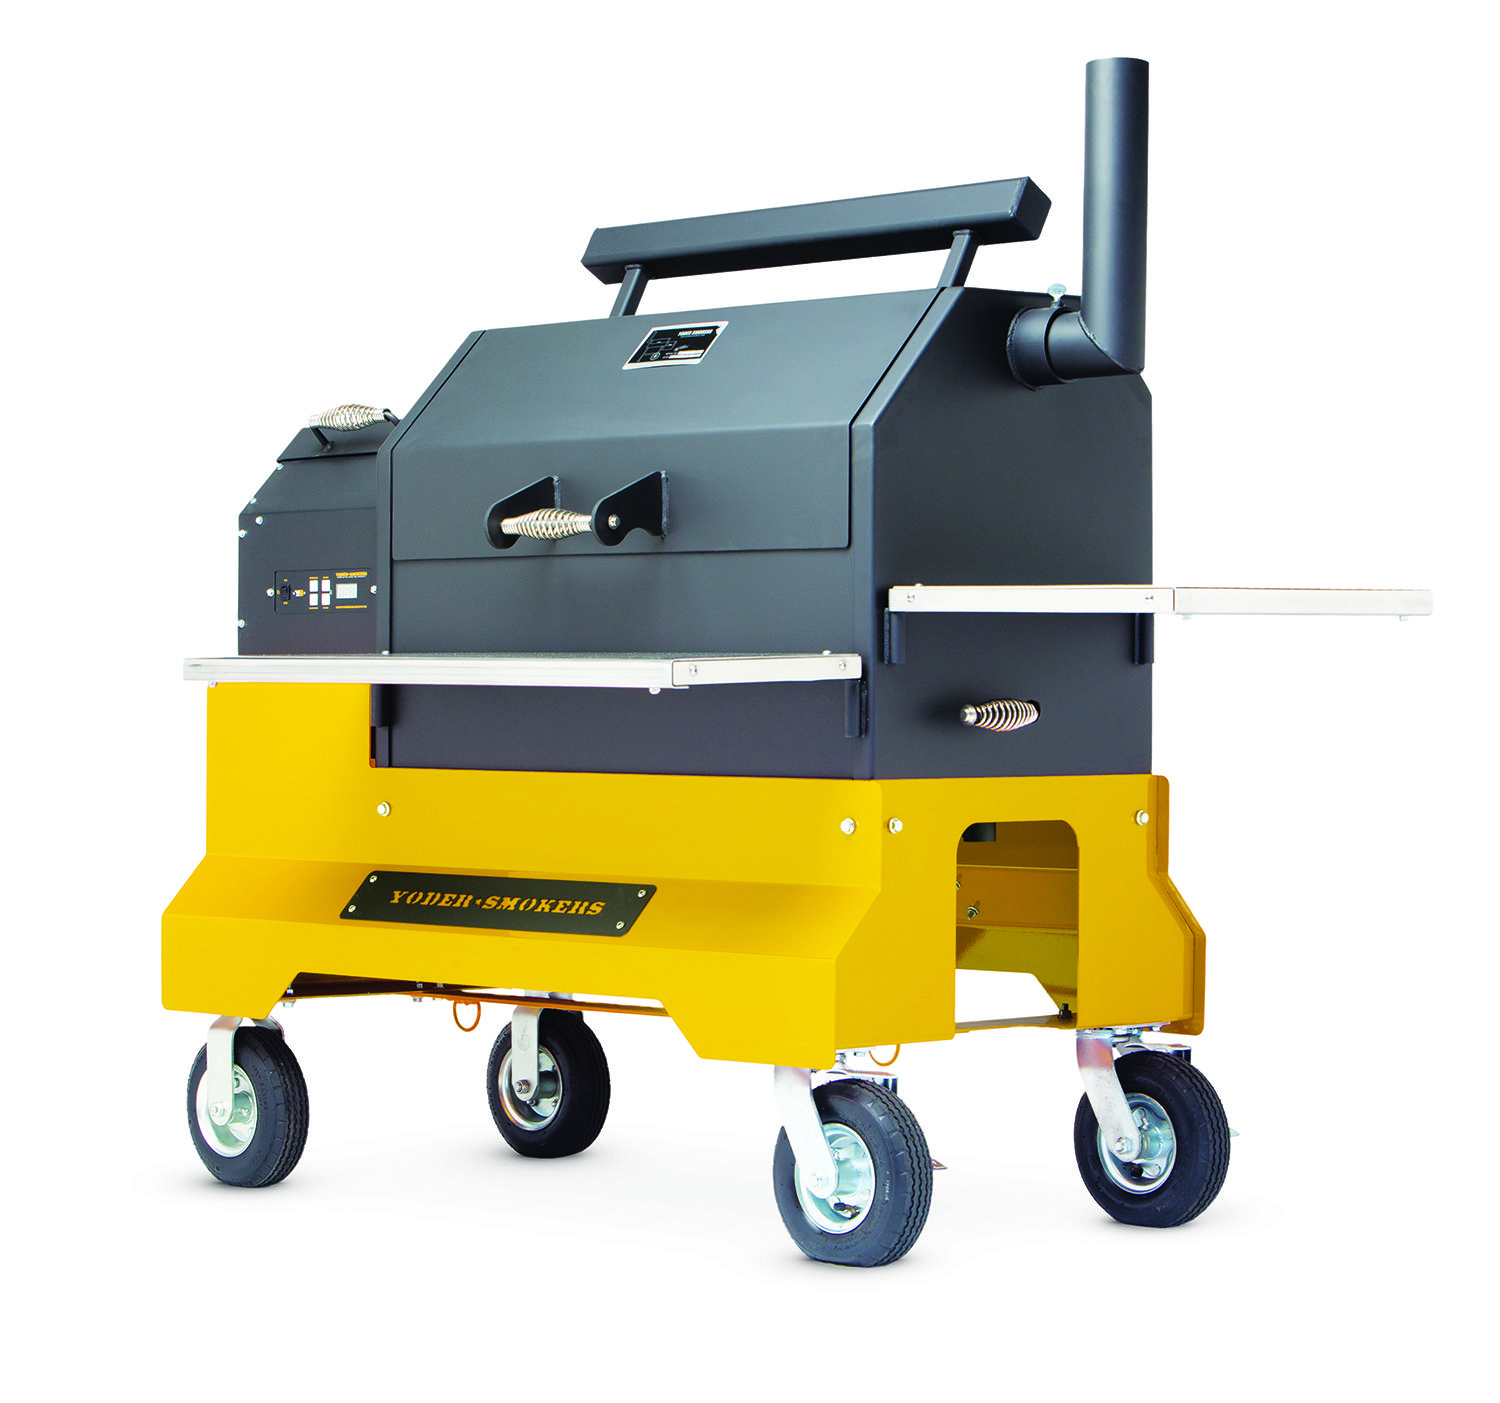 The Yoder Smokers YS640 Competition Cart is now available in